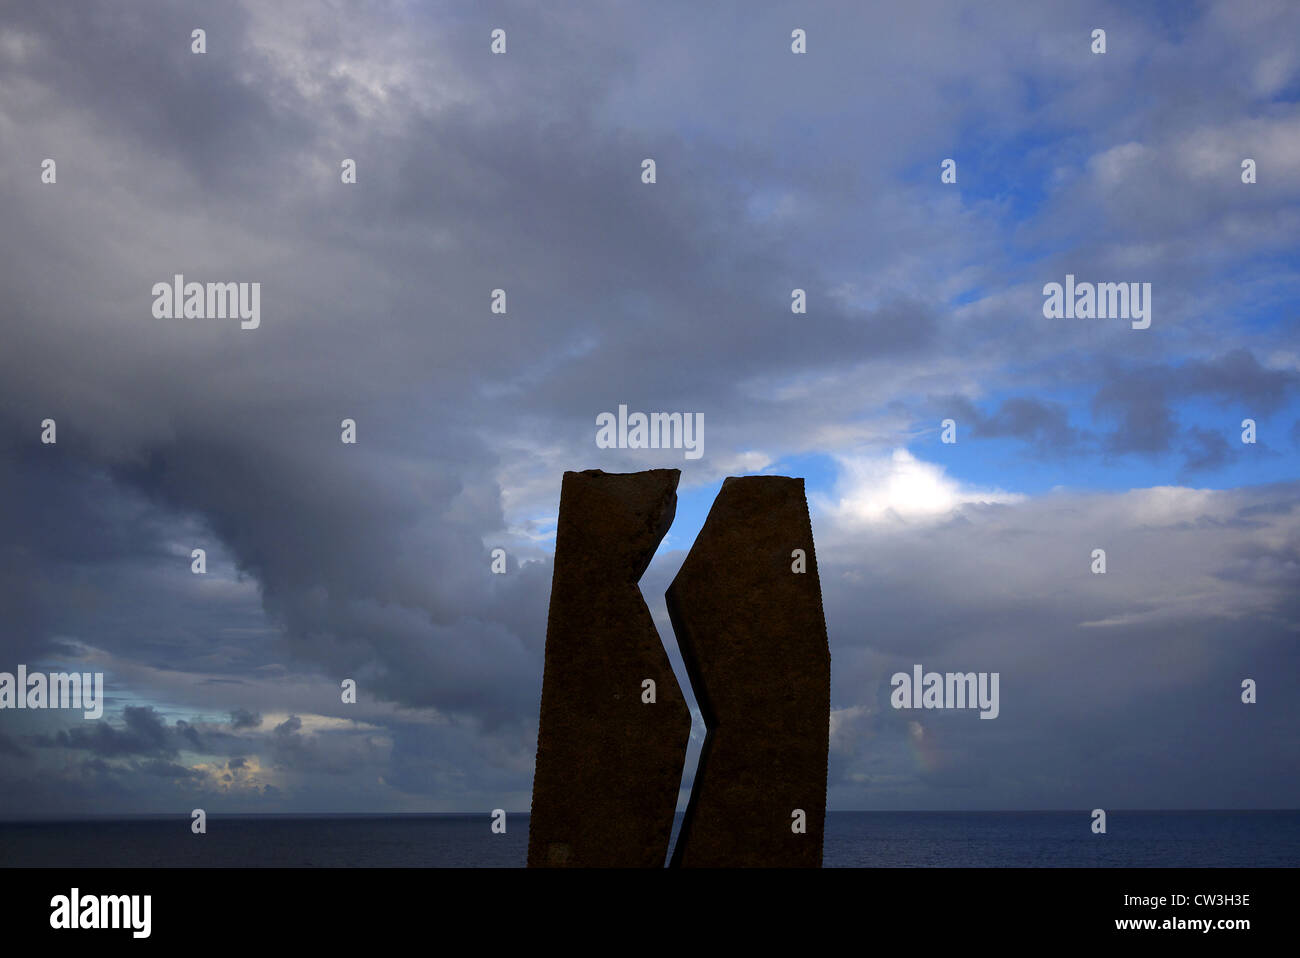 Monument to the Prestige oil spill at Muxia, Galicia, Spain. - Stock Image